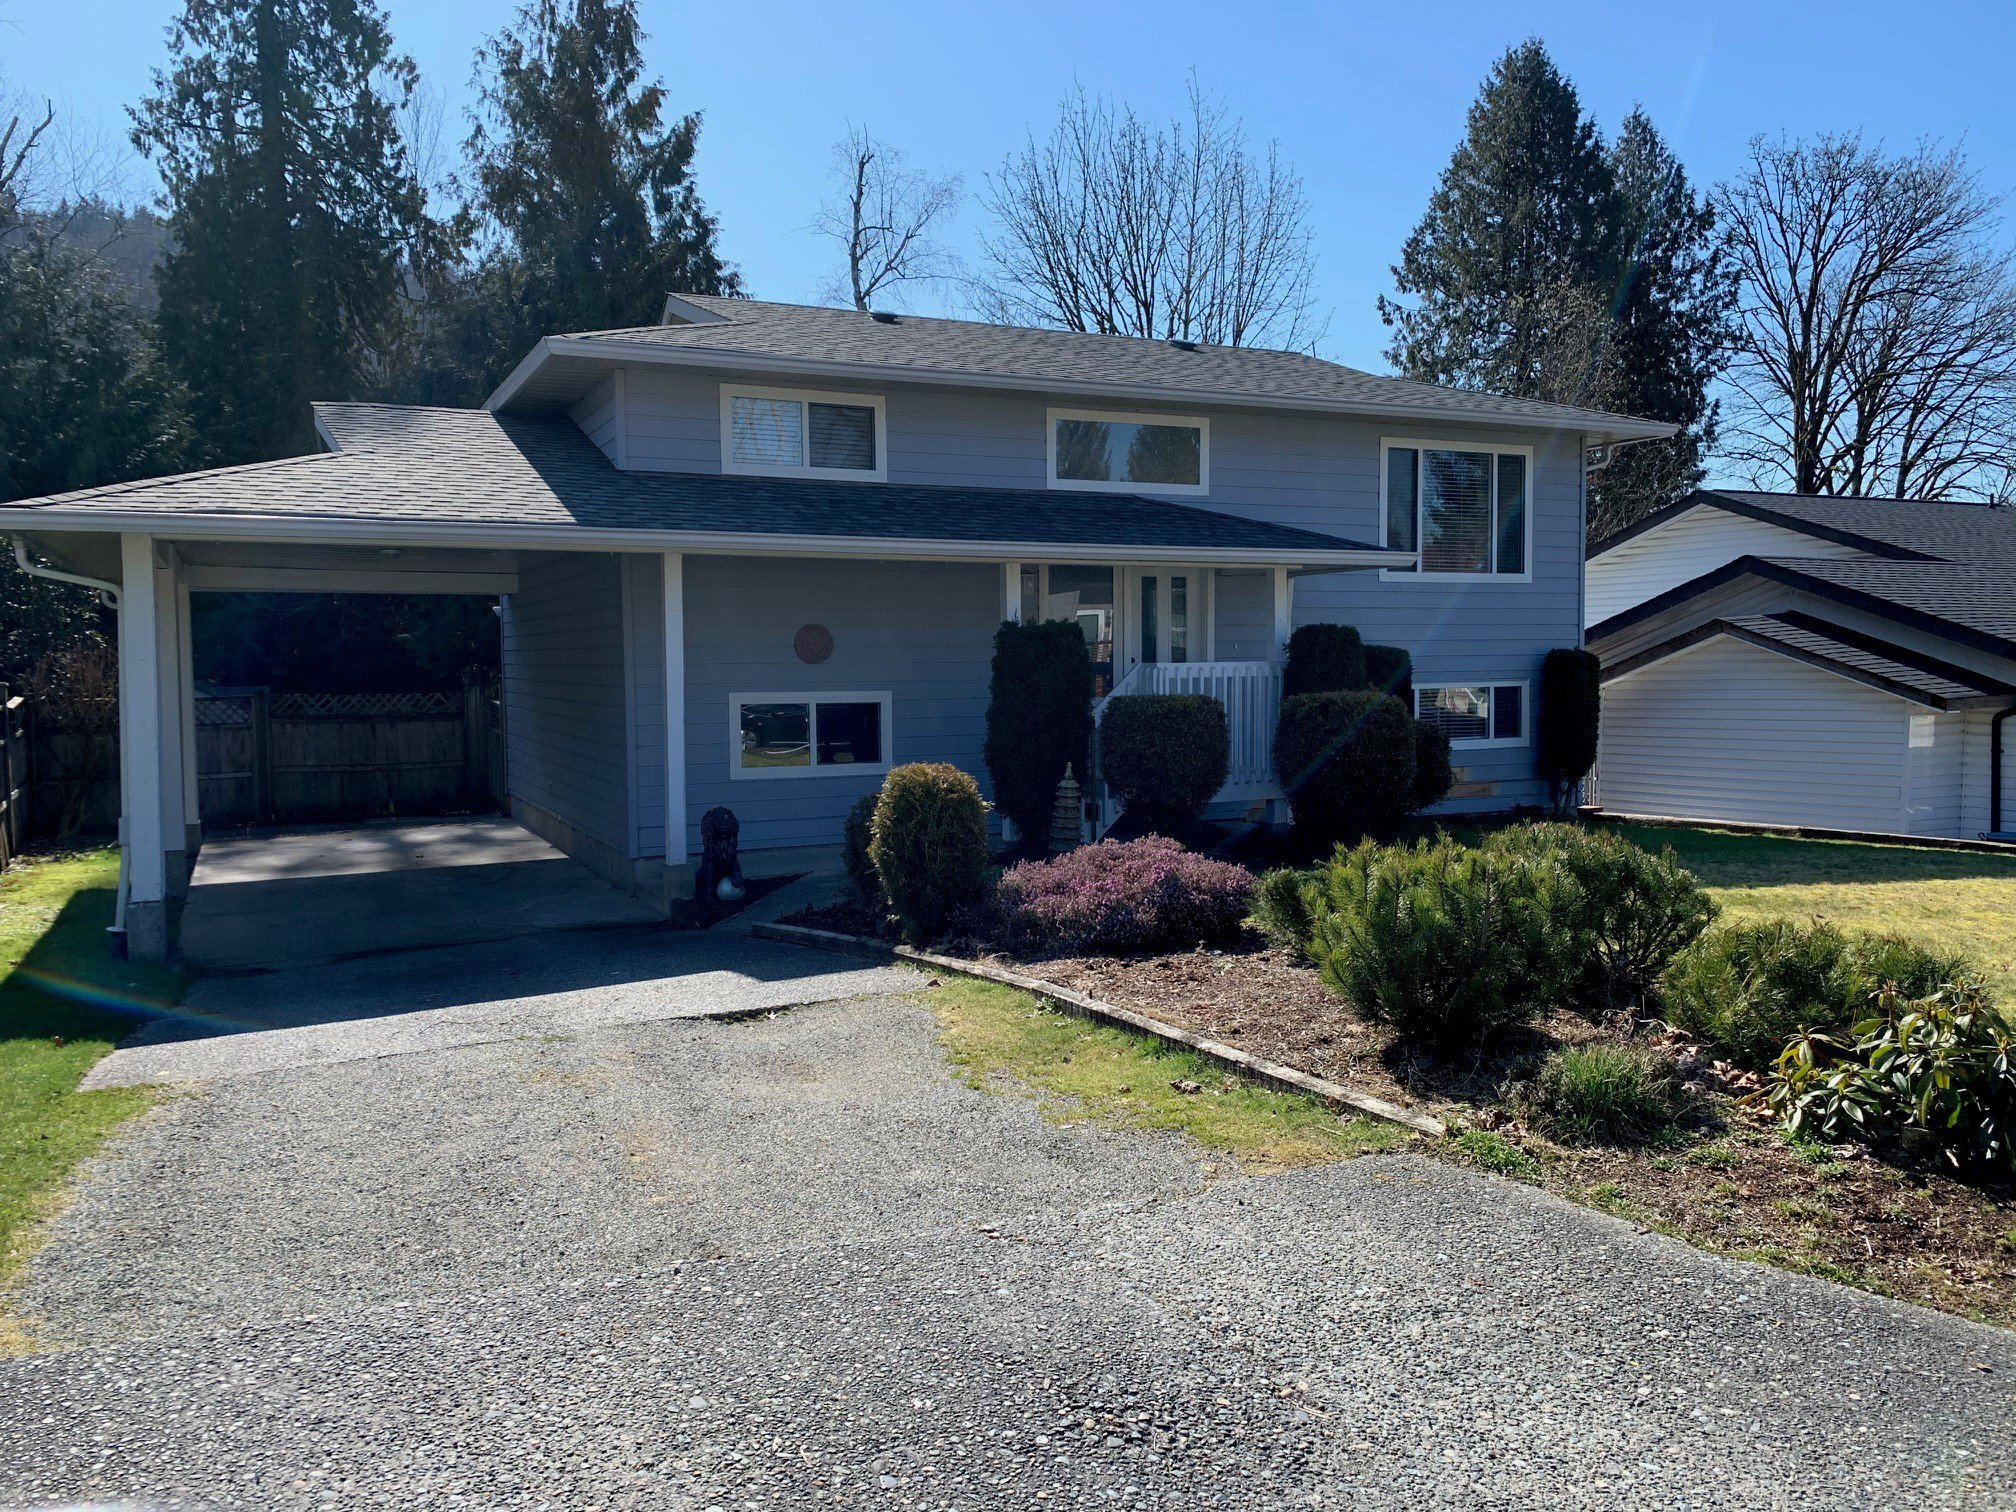 Main Photo: Upper 35380 Selkirk Ave. in Abbotsford: Abbotsford East Condo for rent